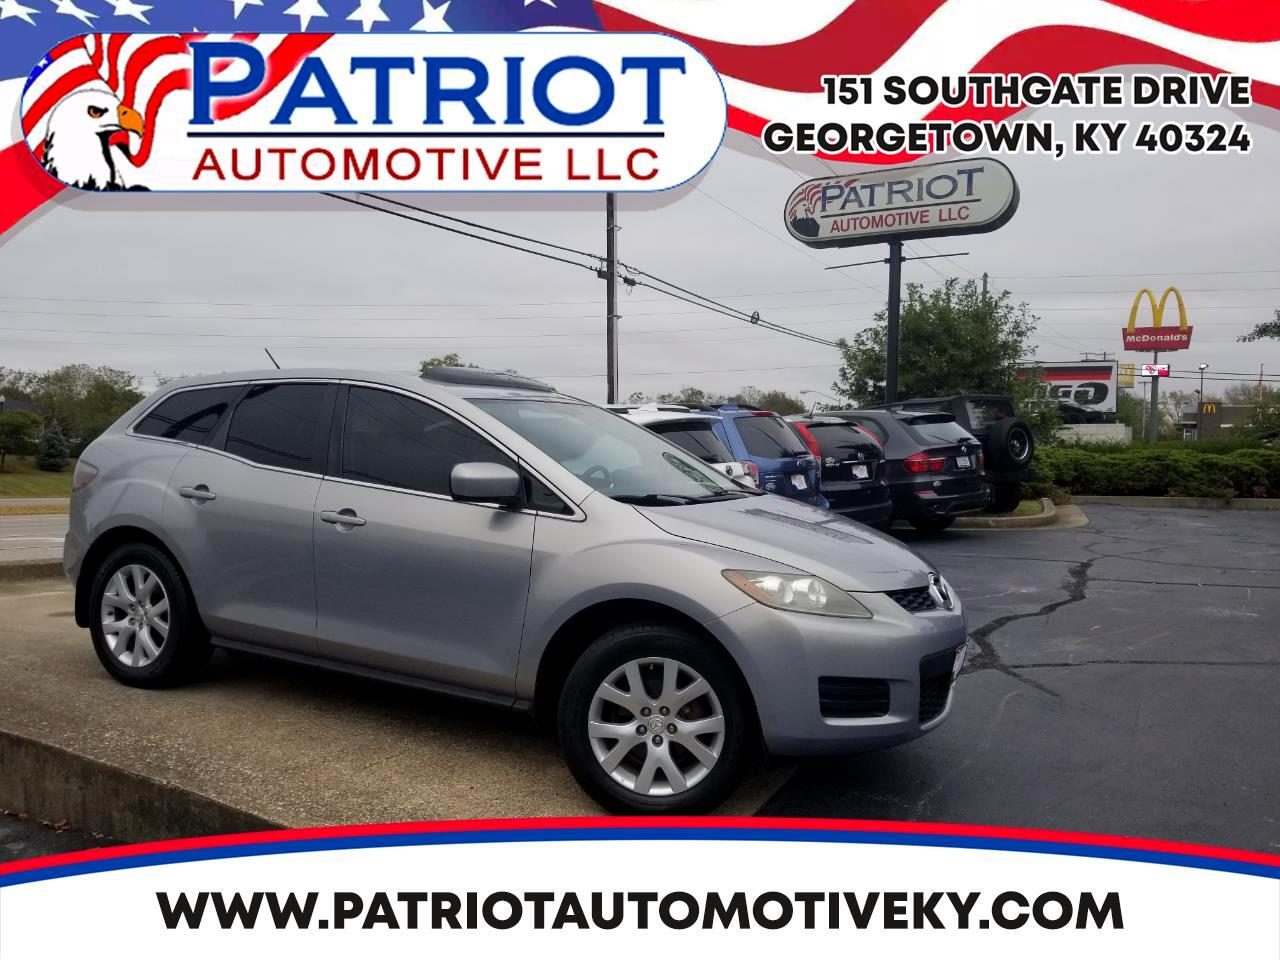 2007 Mazda CX-7 FWD 4dr Touring